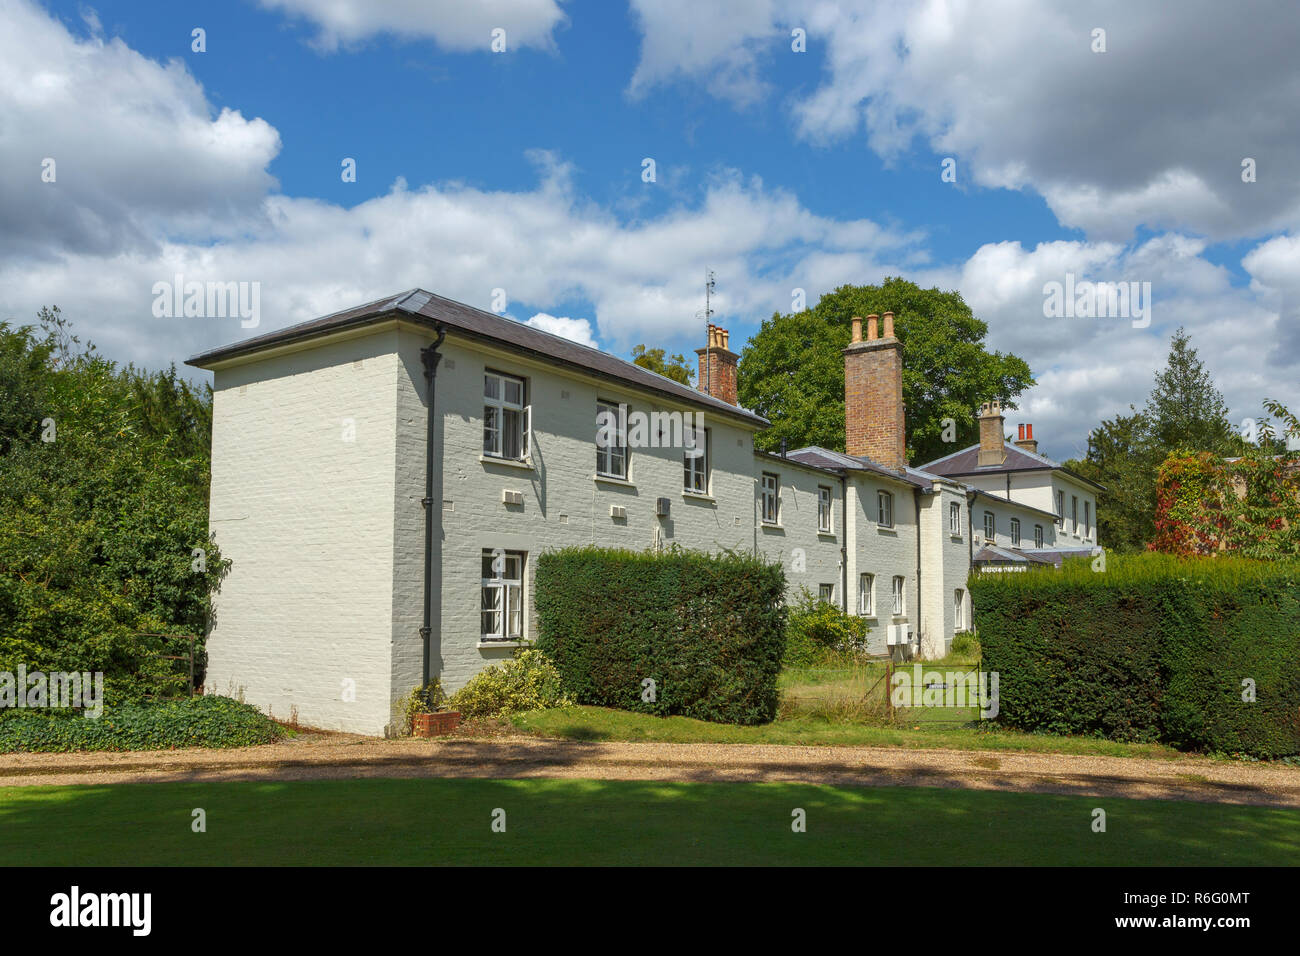 Frogmore Cottage in the grounds of Frogmore House, Frogmore Estate, Windsor, UK, home of Prince Harry and Meghan Markle, Duke and Duchess of Sussex Stock Photo